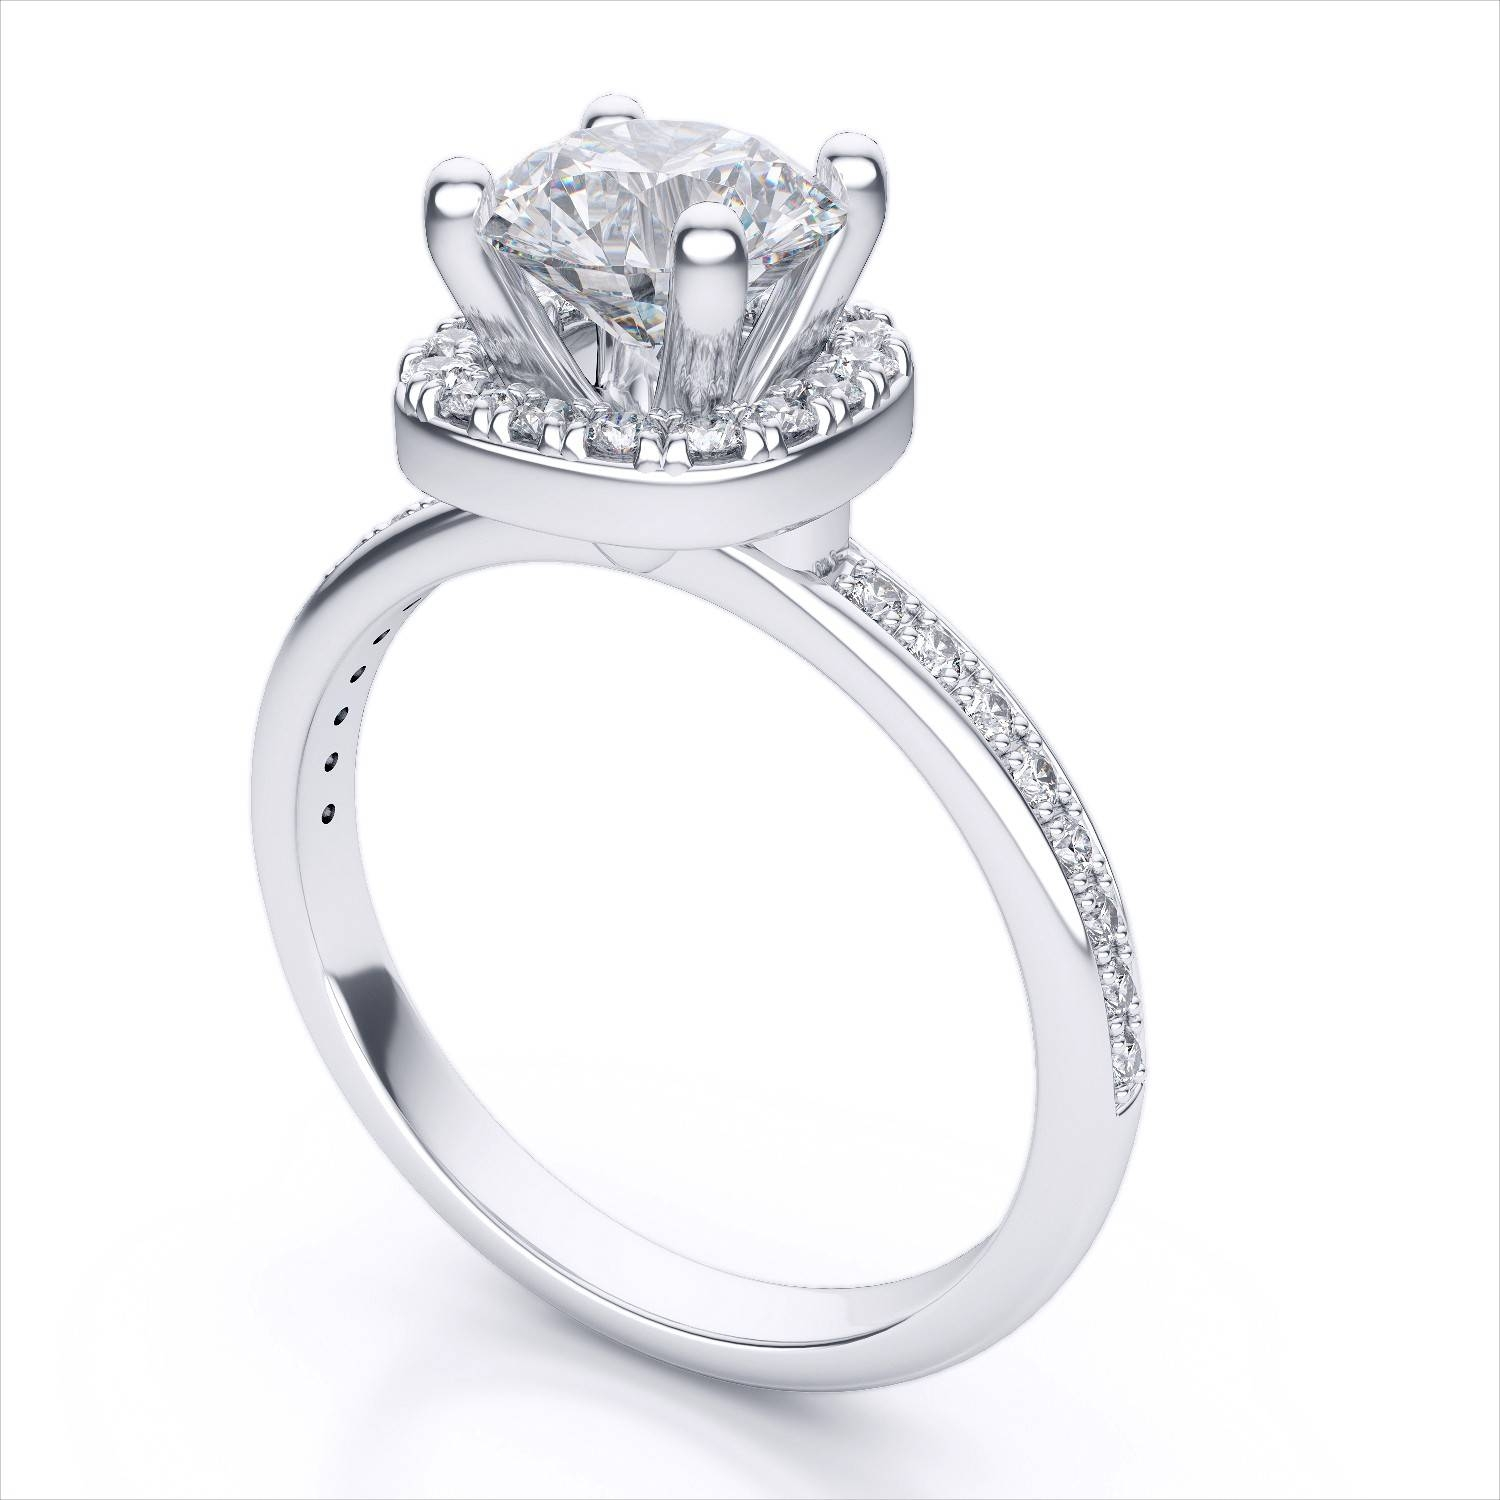 new jewellery halo settings platinum split setting in diamond shank ring of engagement wedding